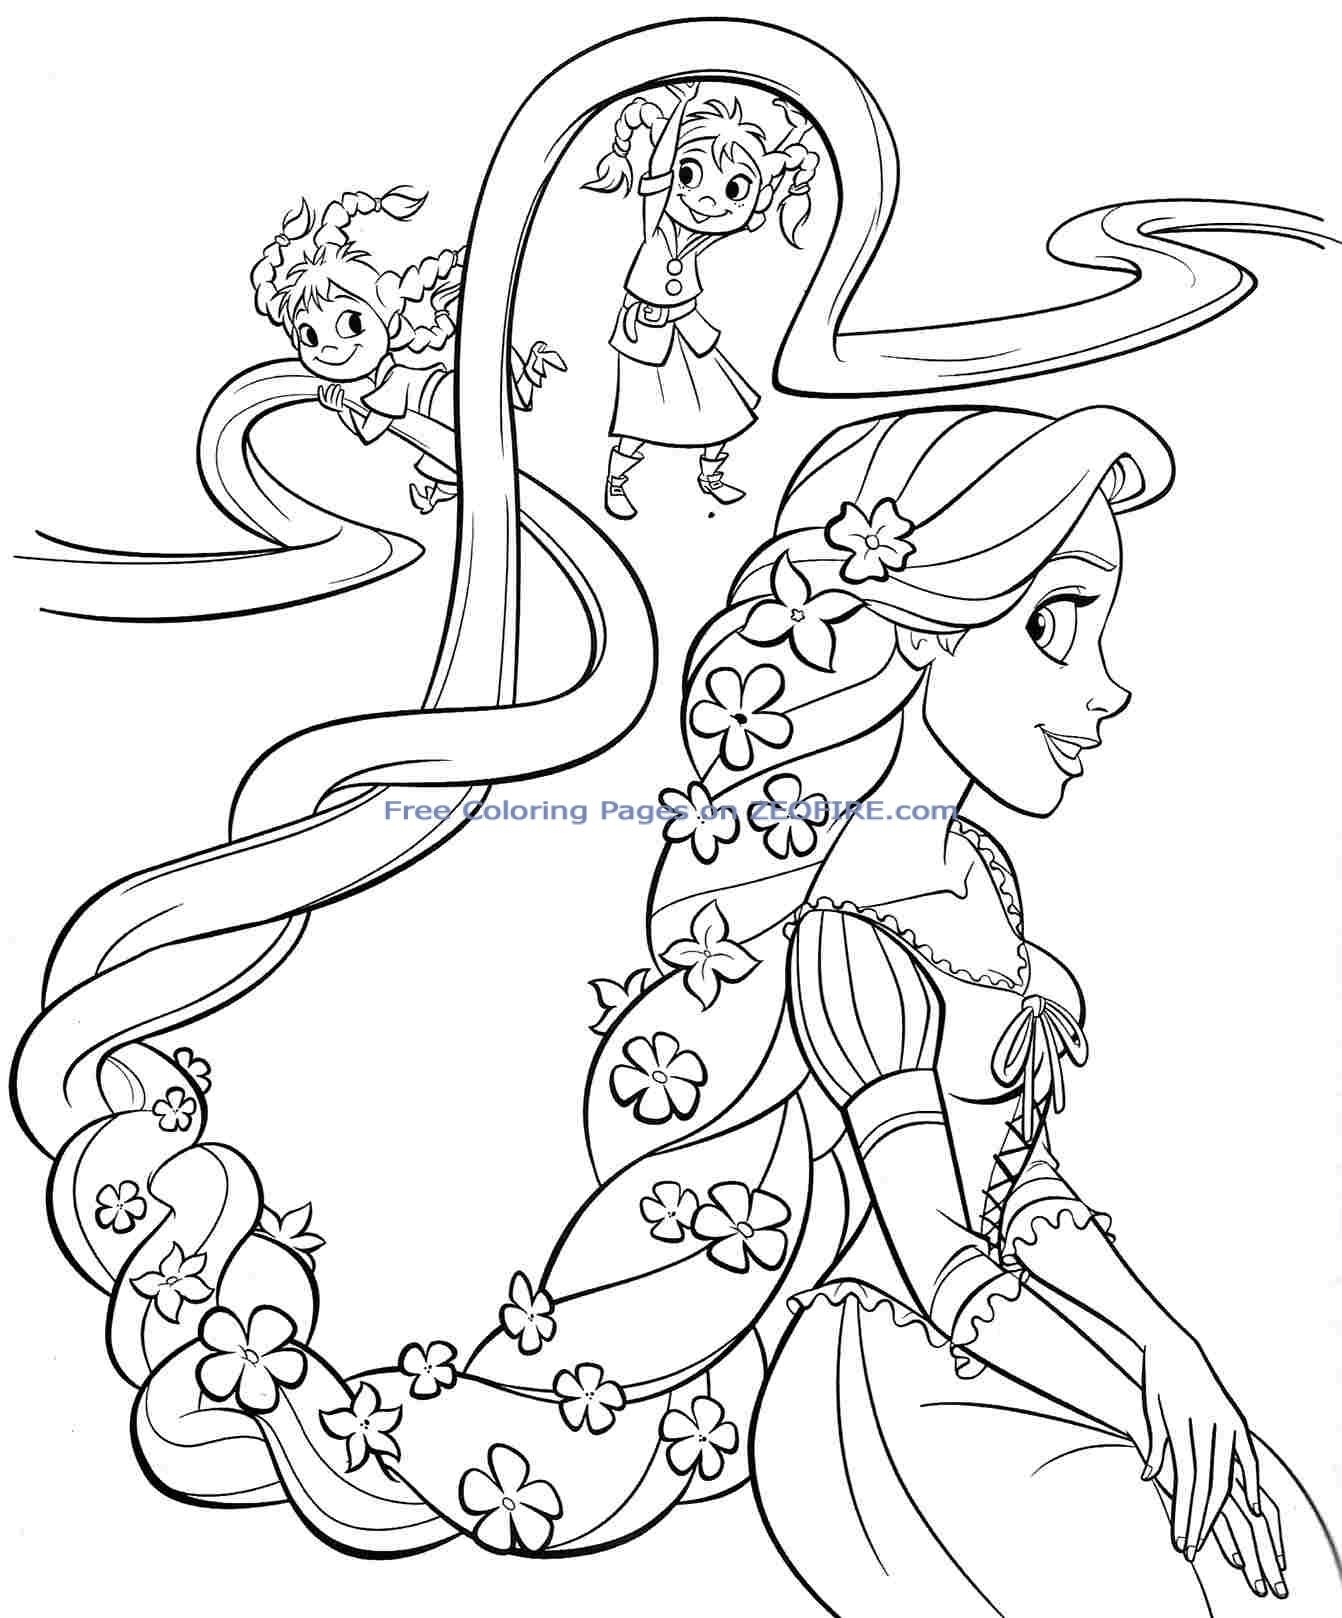 Free Printable Disney Coloring Pages For Girls at ...